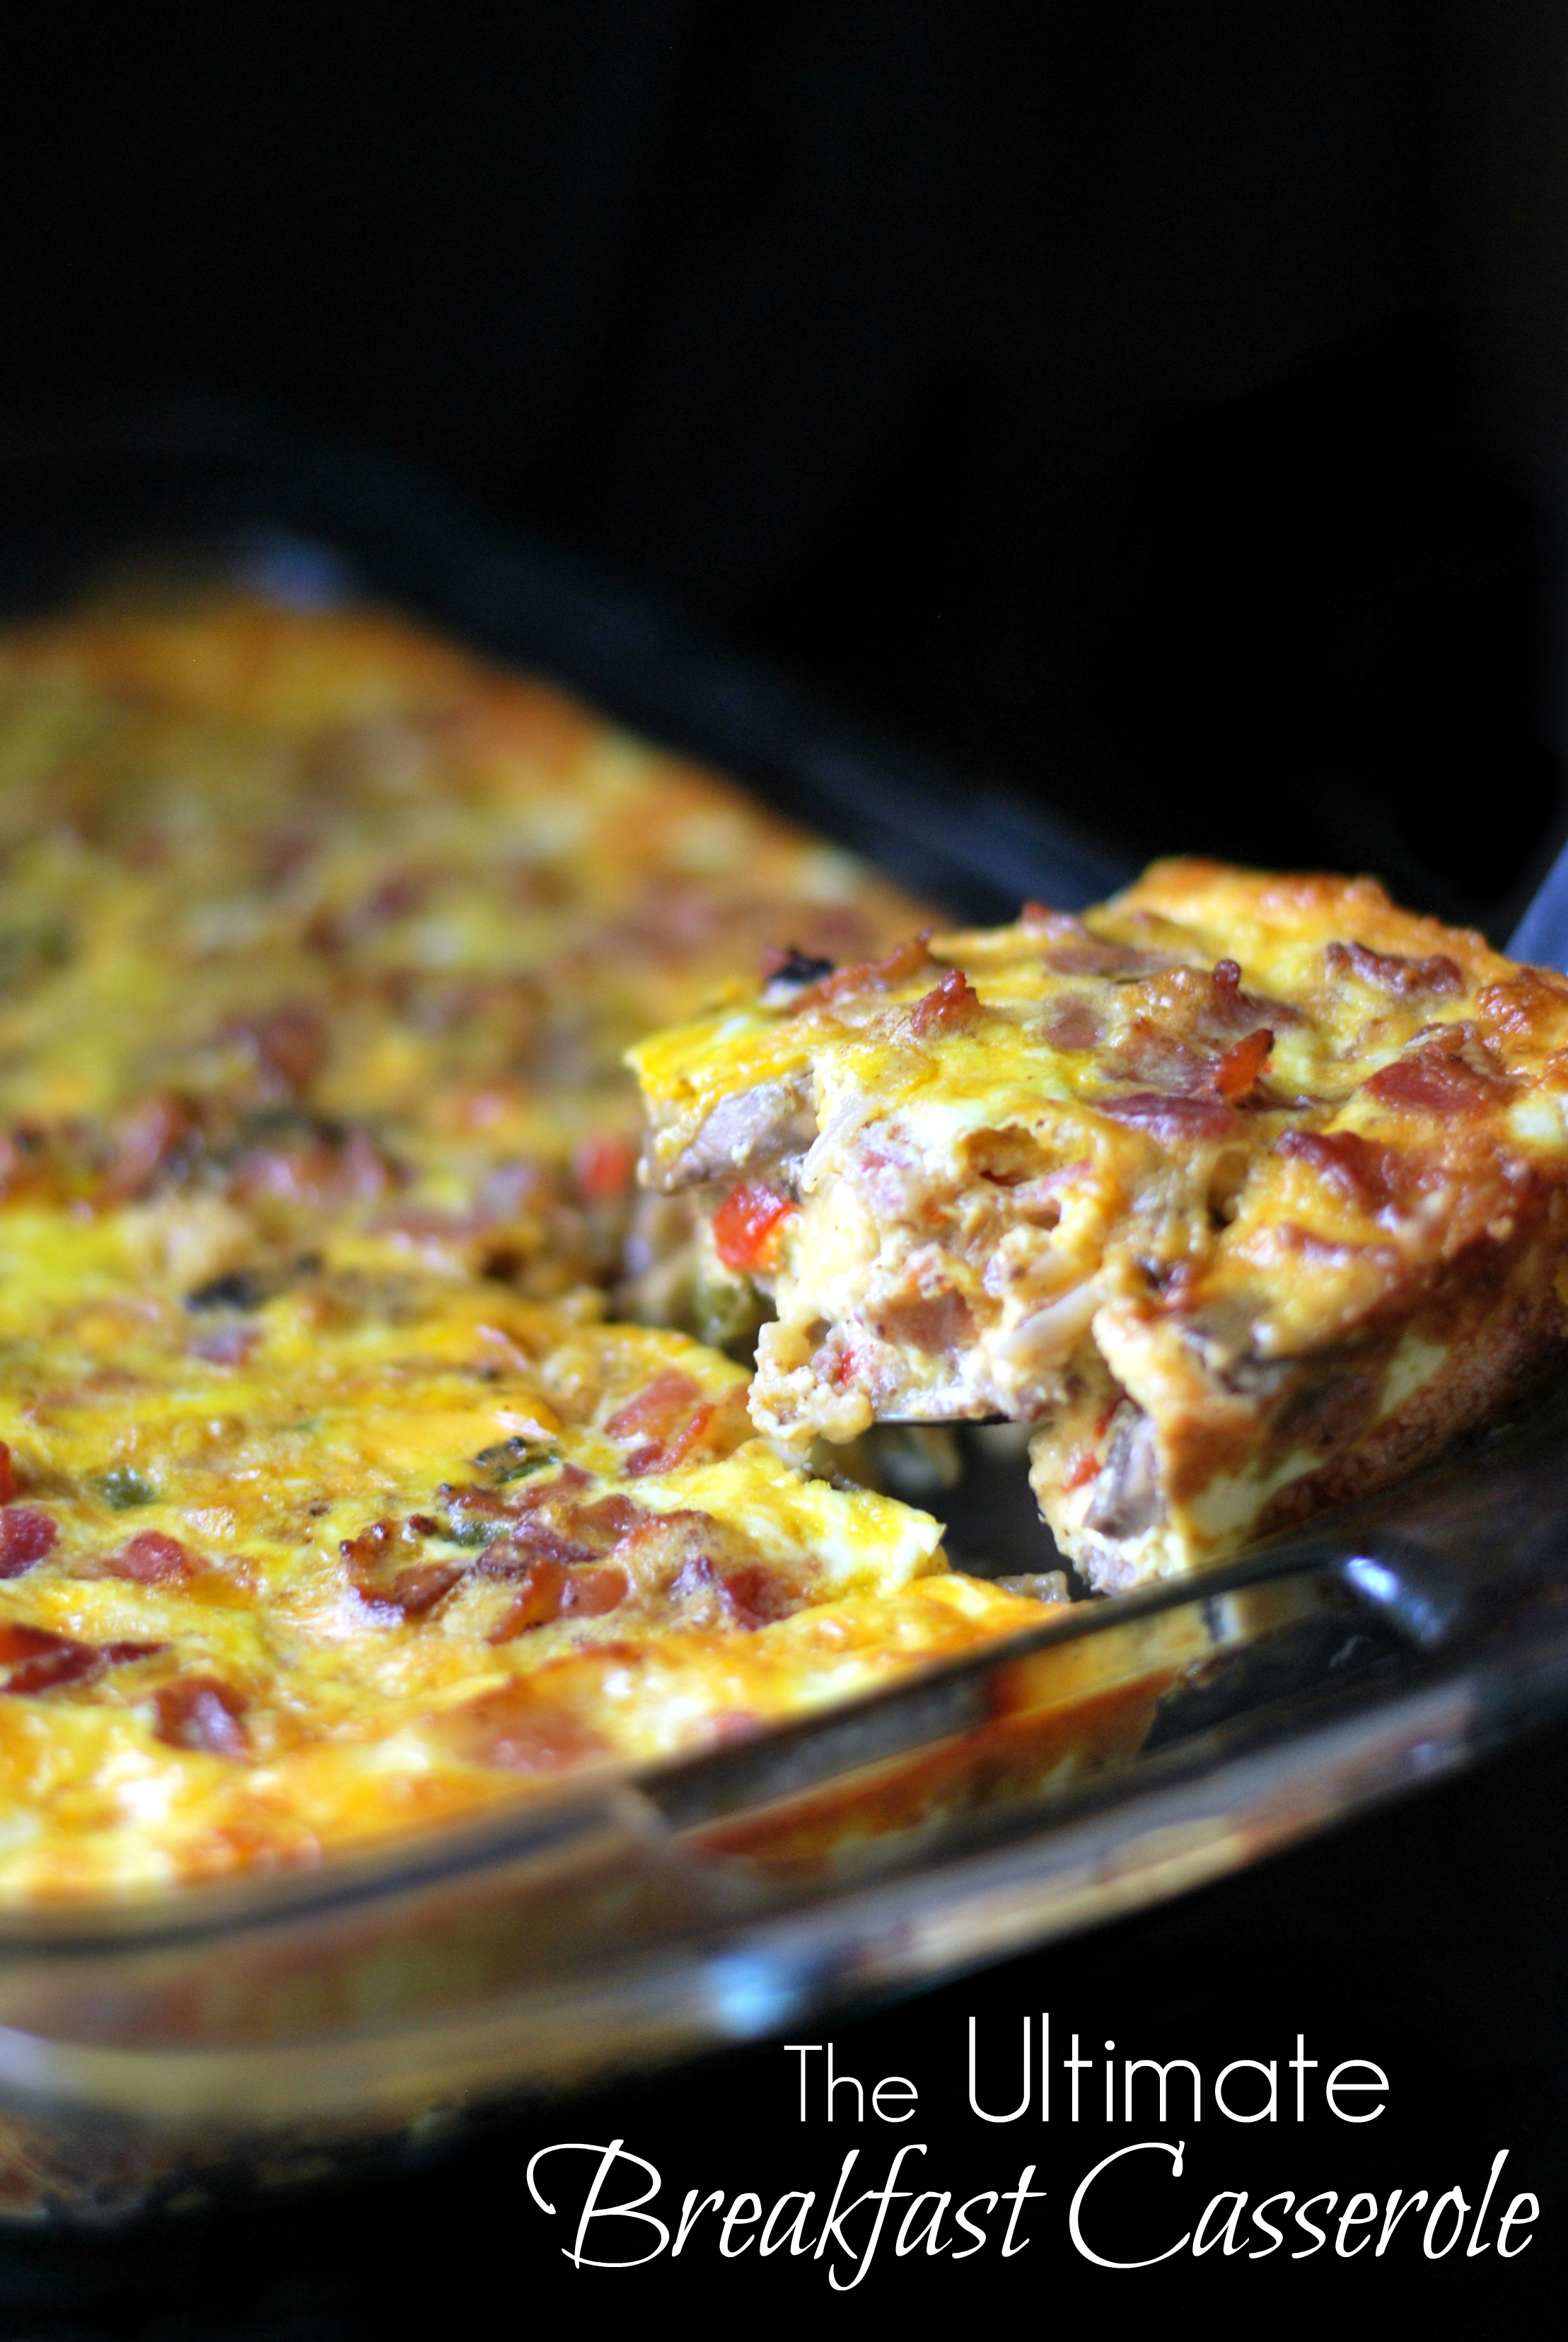 ... www.auntbeesrecipes.com/2015/04/the-ultimate-breakfast-casserole.html